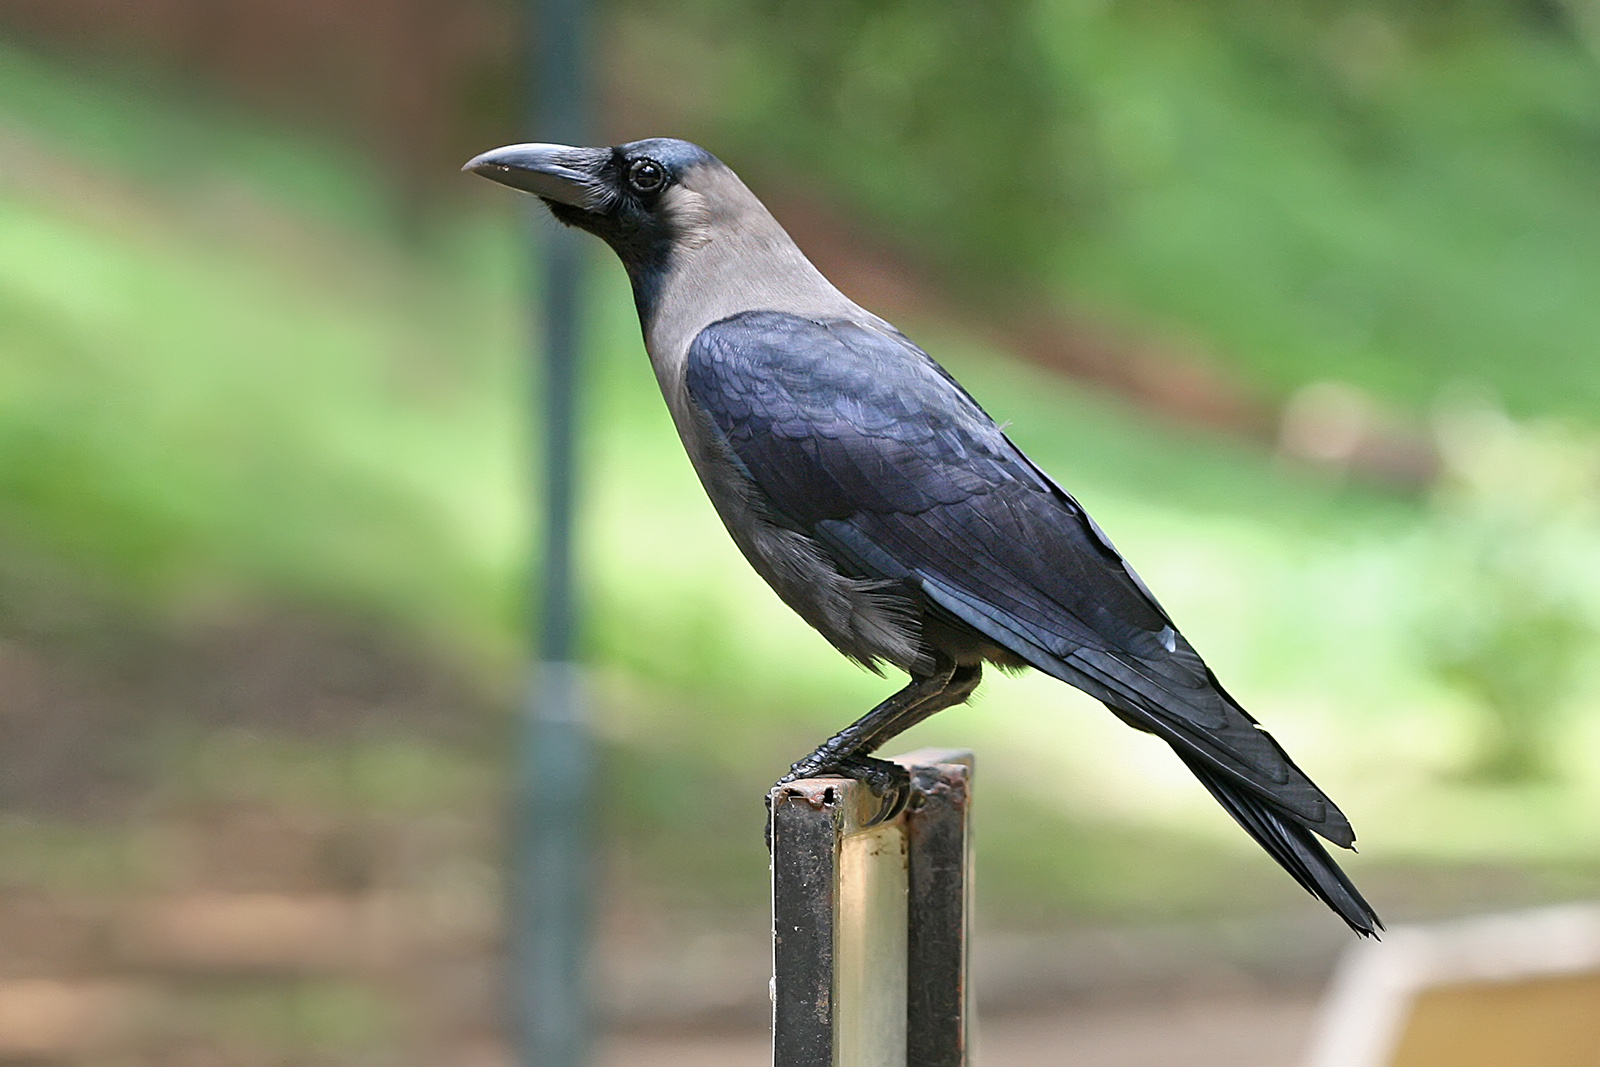 Crows are Much Smarter Than Previously Thought: Study